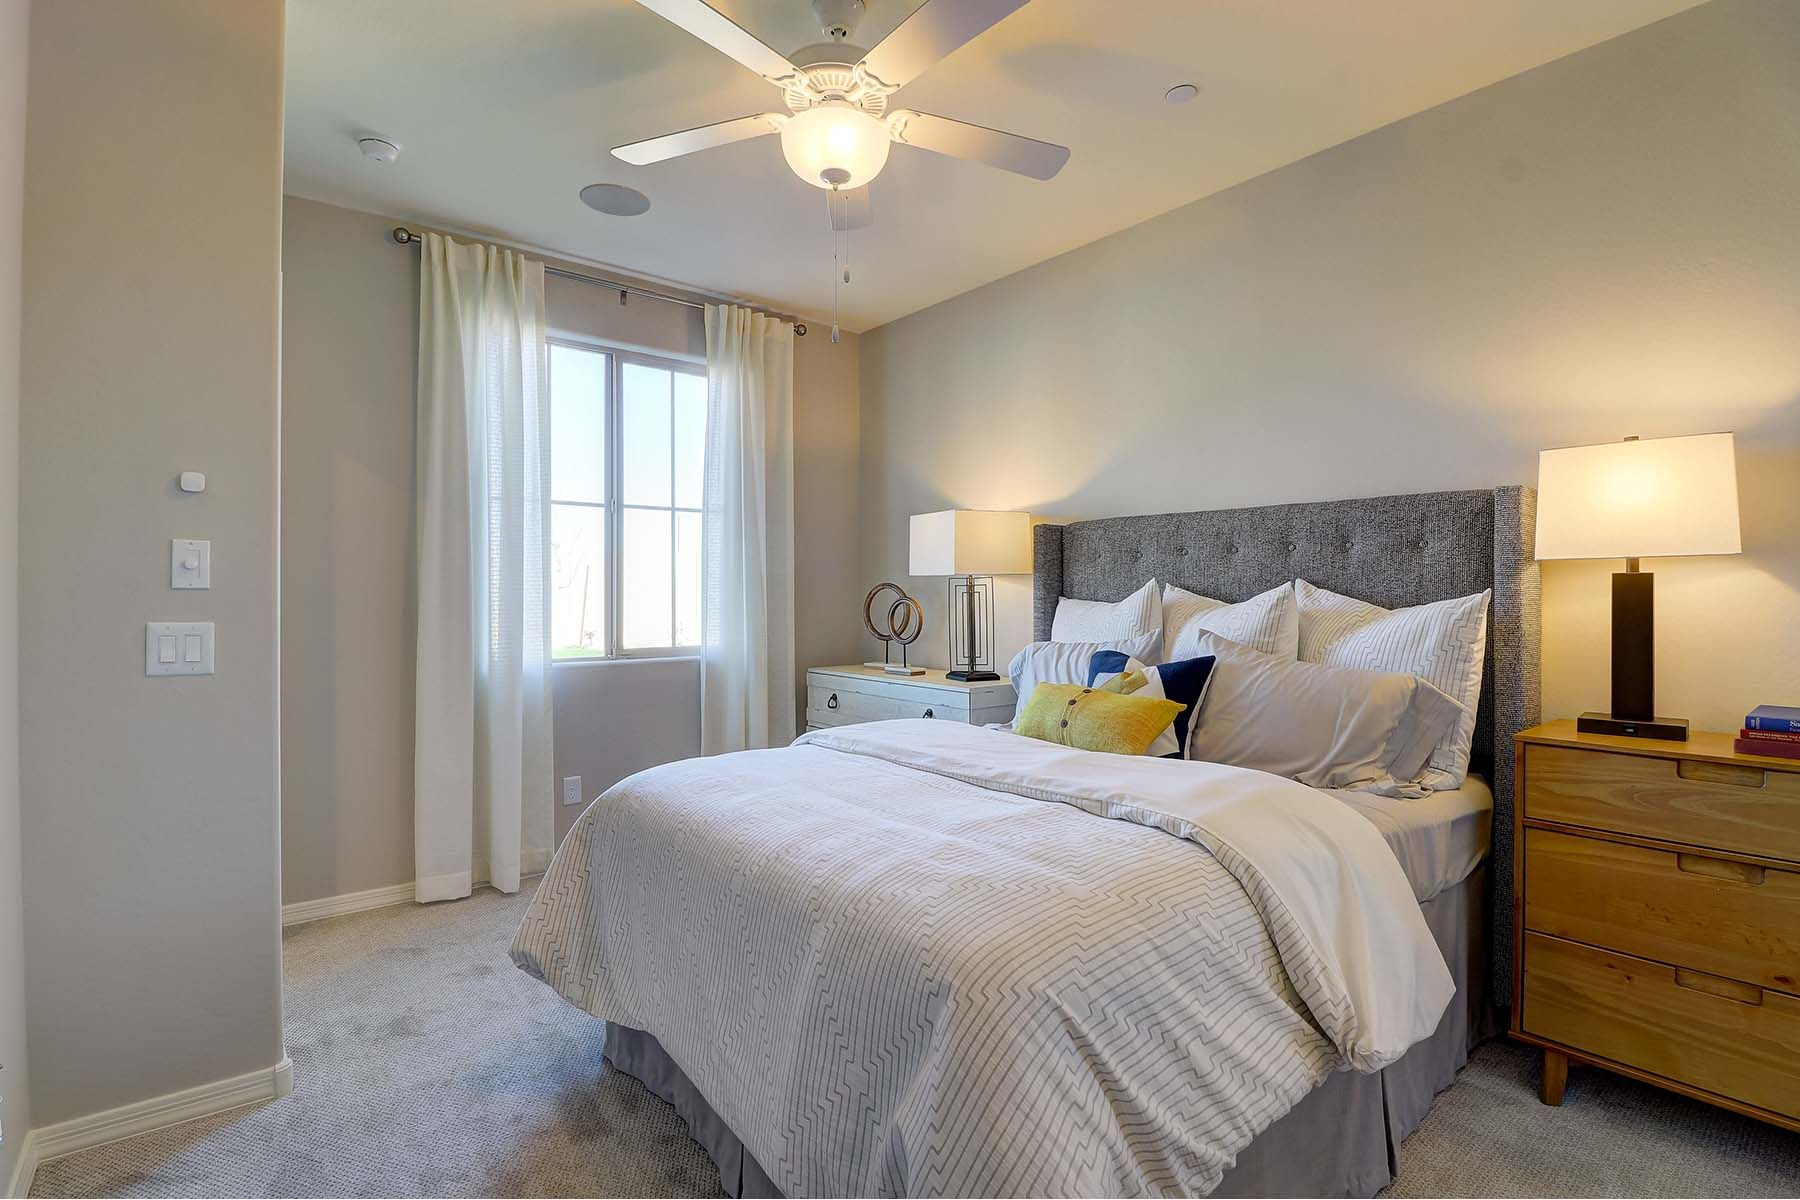 Bedroom featured in the Willowleaf By Mattamy Homes in Phoenix-Mesa, AZ